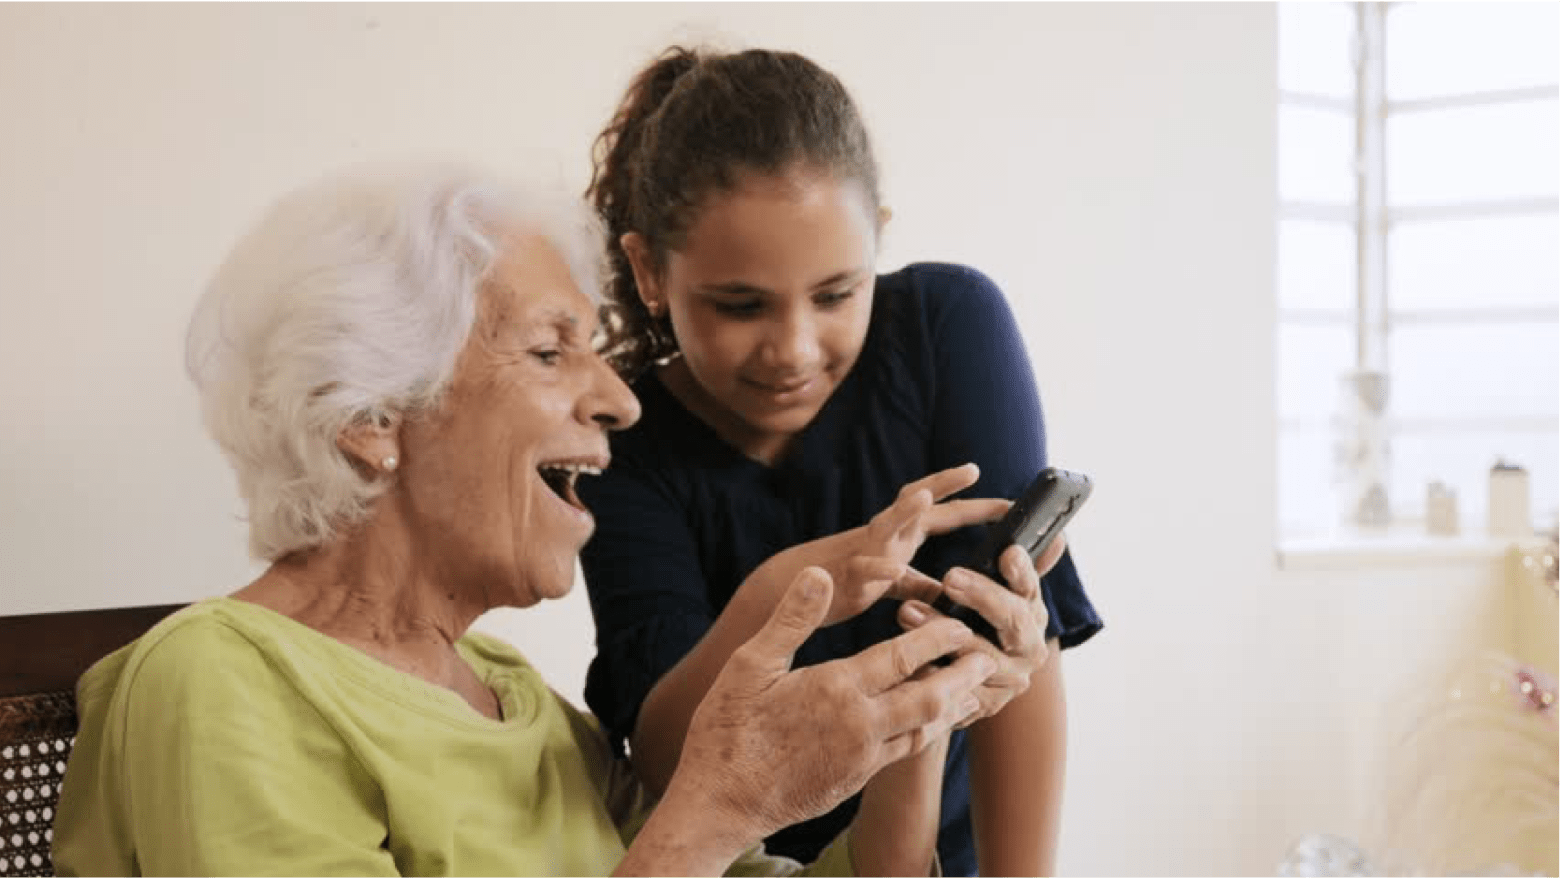 A kid helping an elderly with her phone